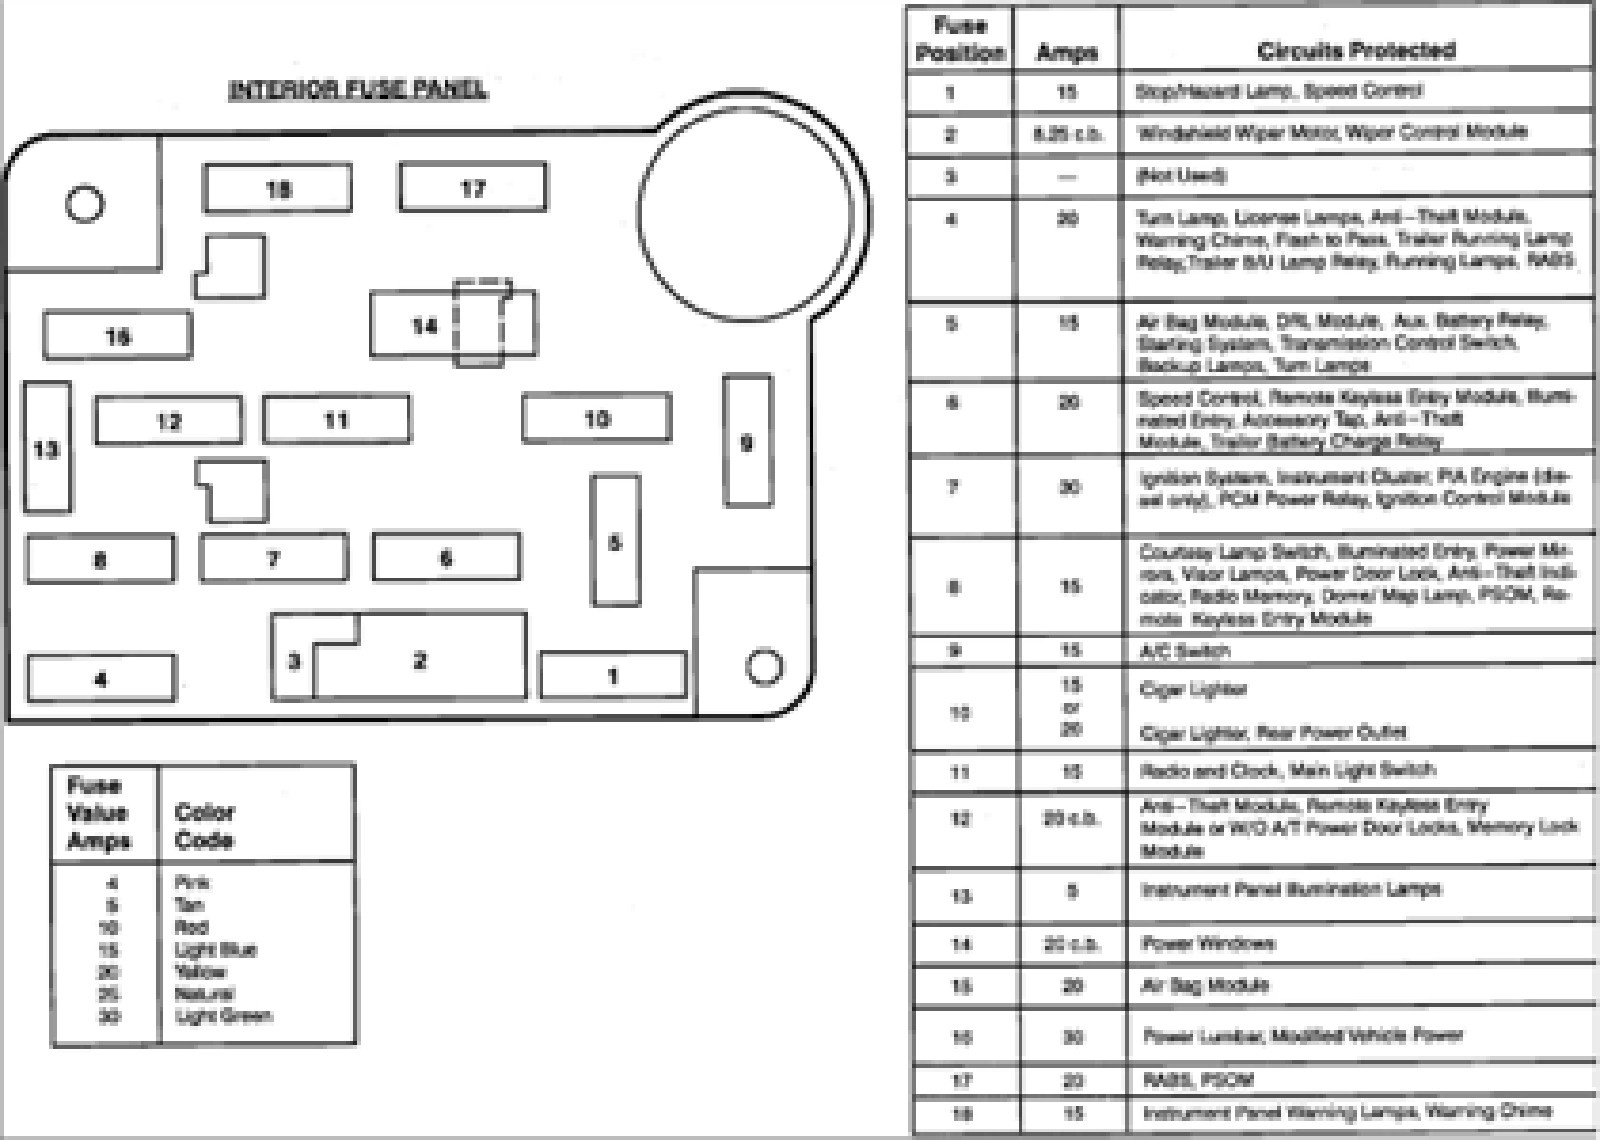 ford e 150 questions fuse diagram for a 1993 ford econoline van on 1998 Ford Econoline Van Fuse Diagram for fuse diagram for a 1993 ford econoline van mark 3 at 1999 Ford Econoline E150 Fuse Box Diagram